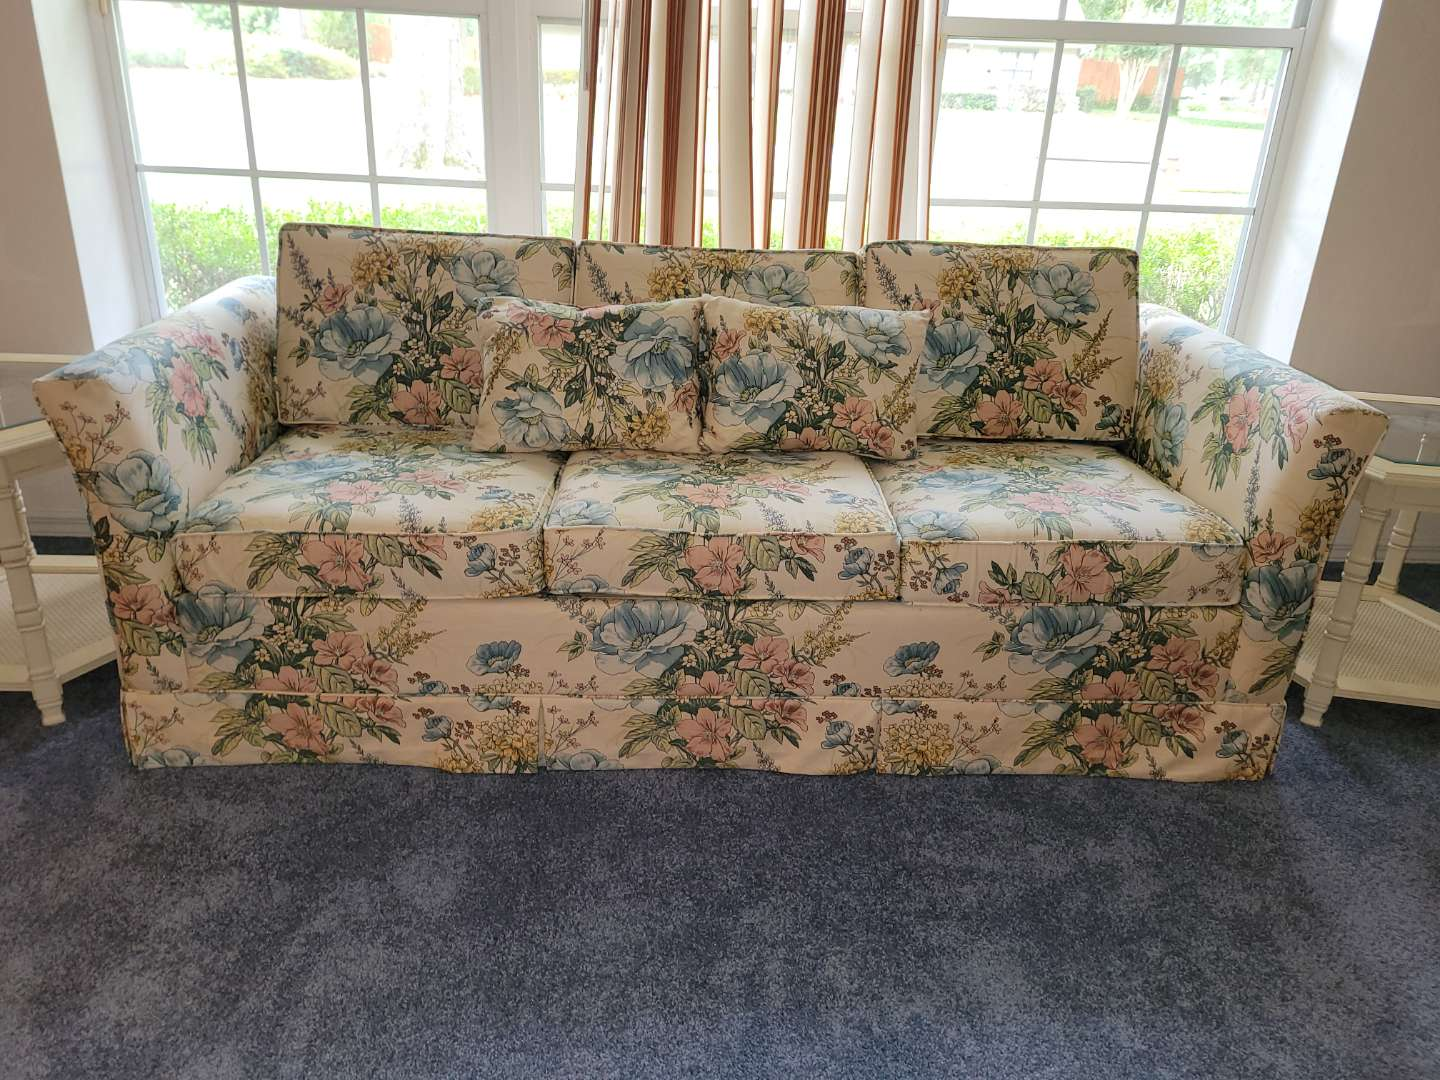 Lot # 273 Castro Convertibles Queen Size Sleeper Sofa - Like New